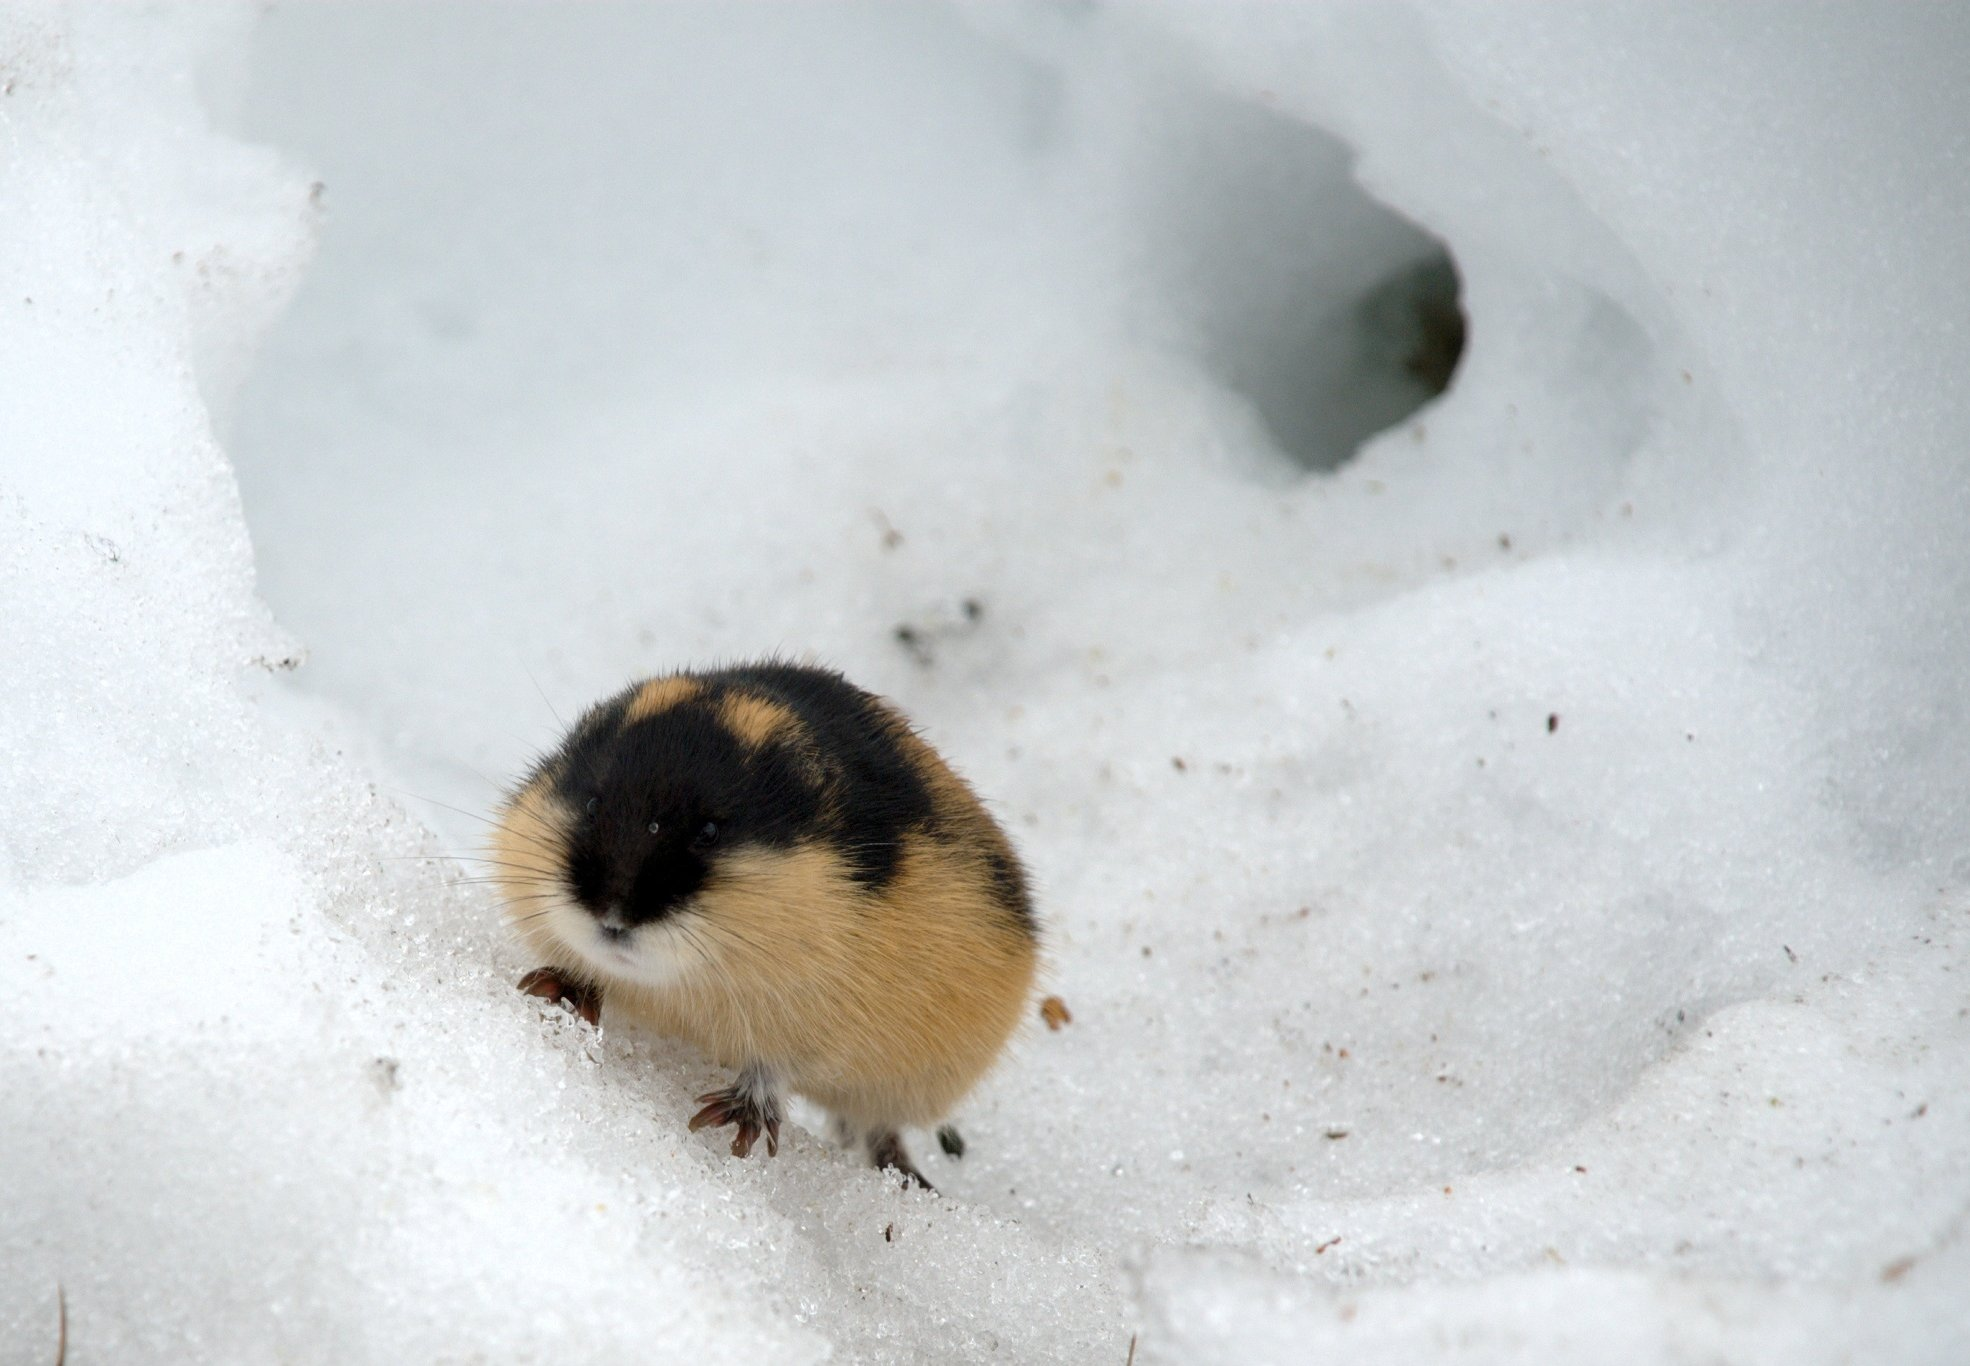 lemming_kgleditsch_Flickr-creativecommons